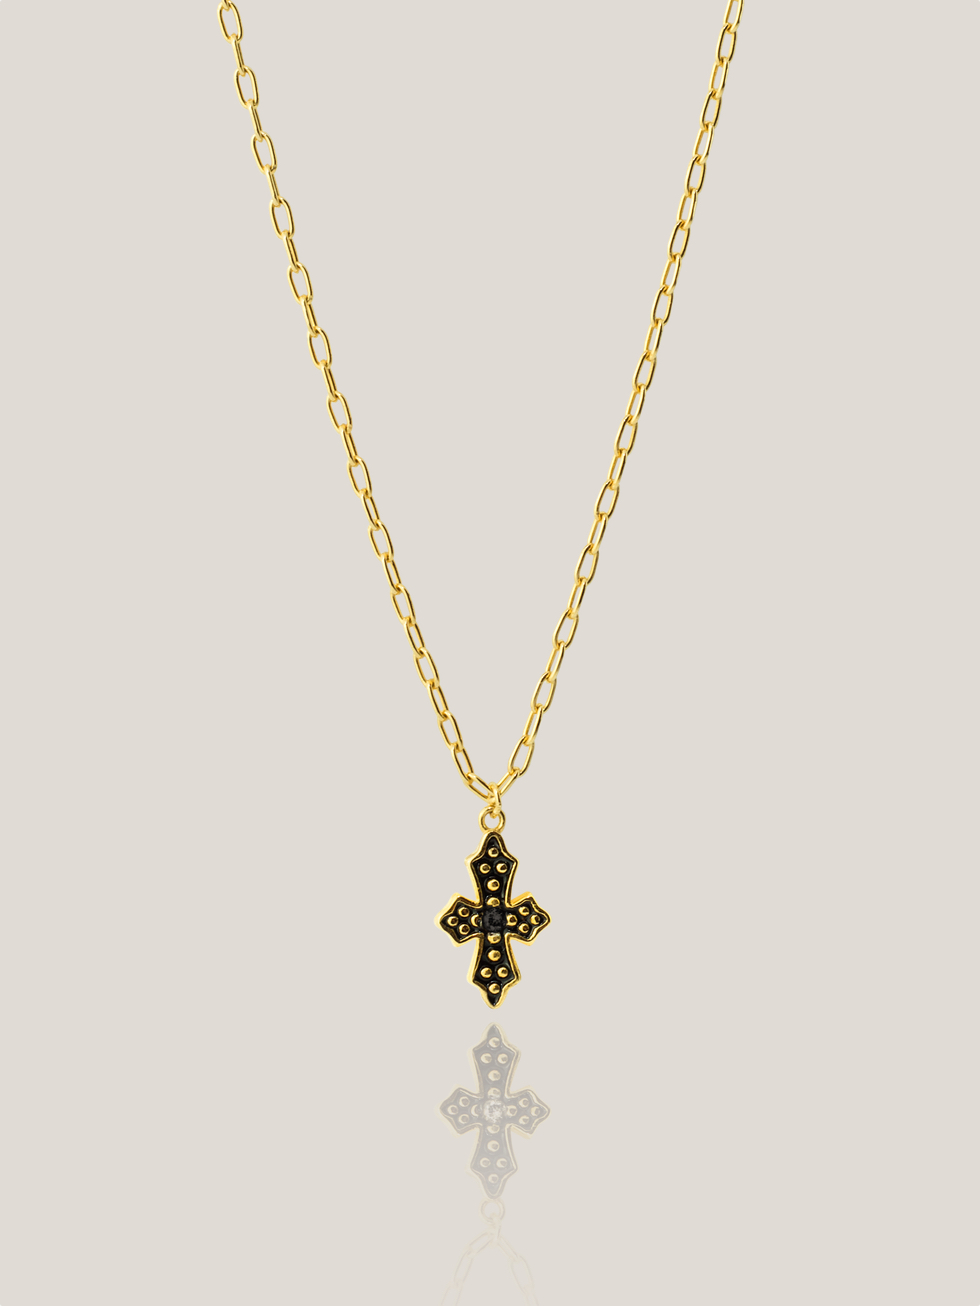 BLACK CROSS gold necklace